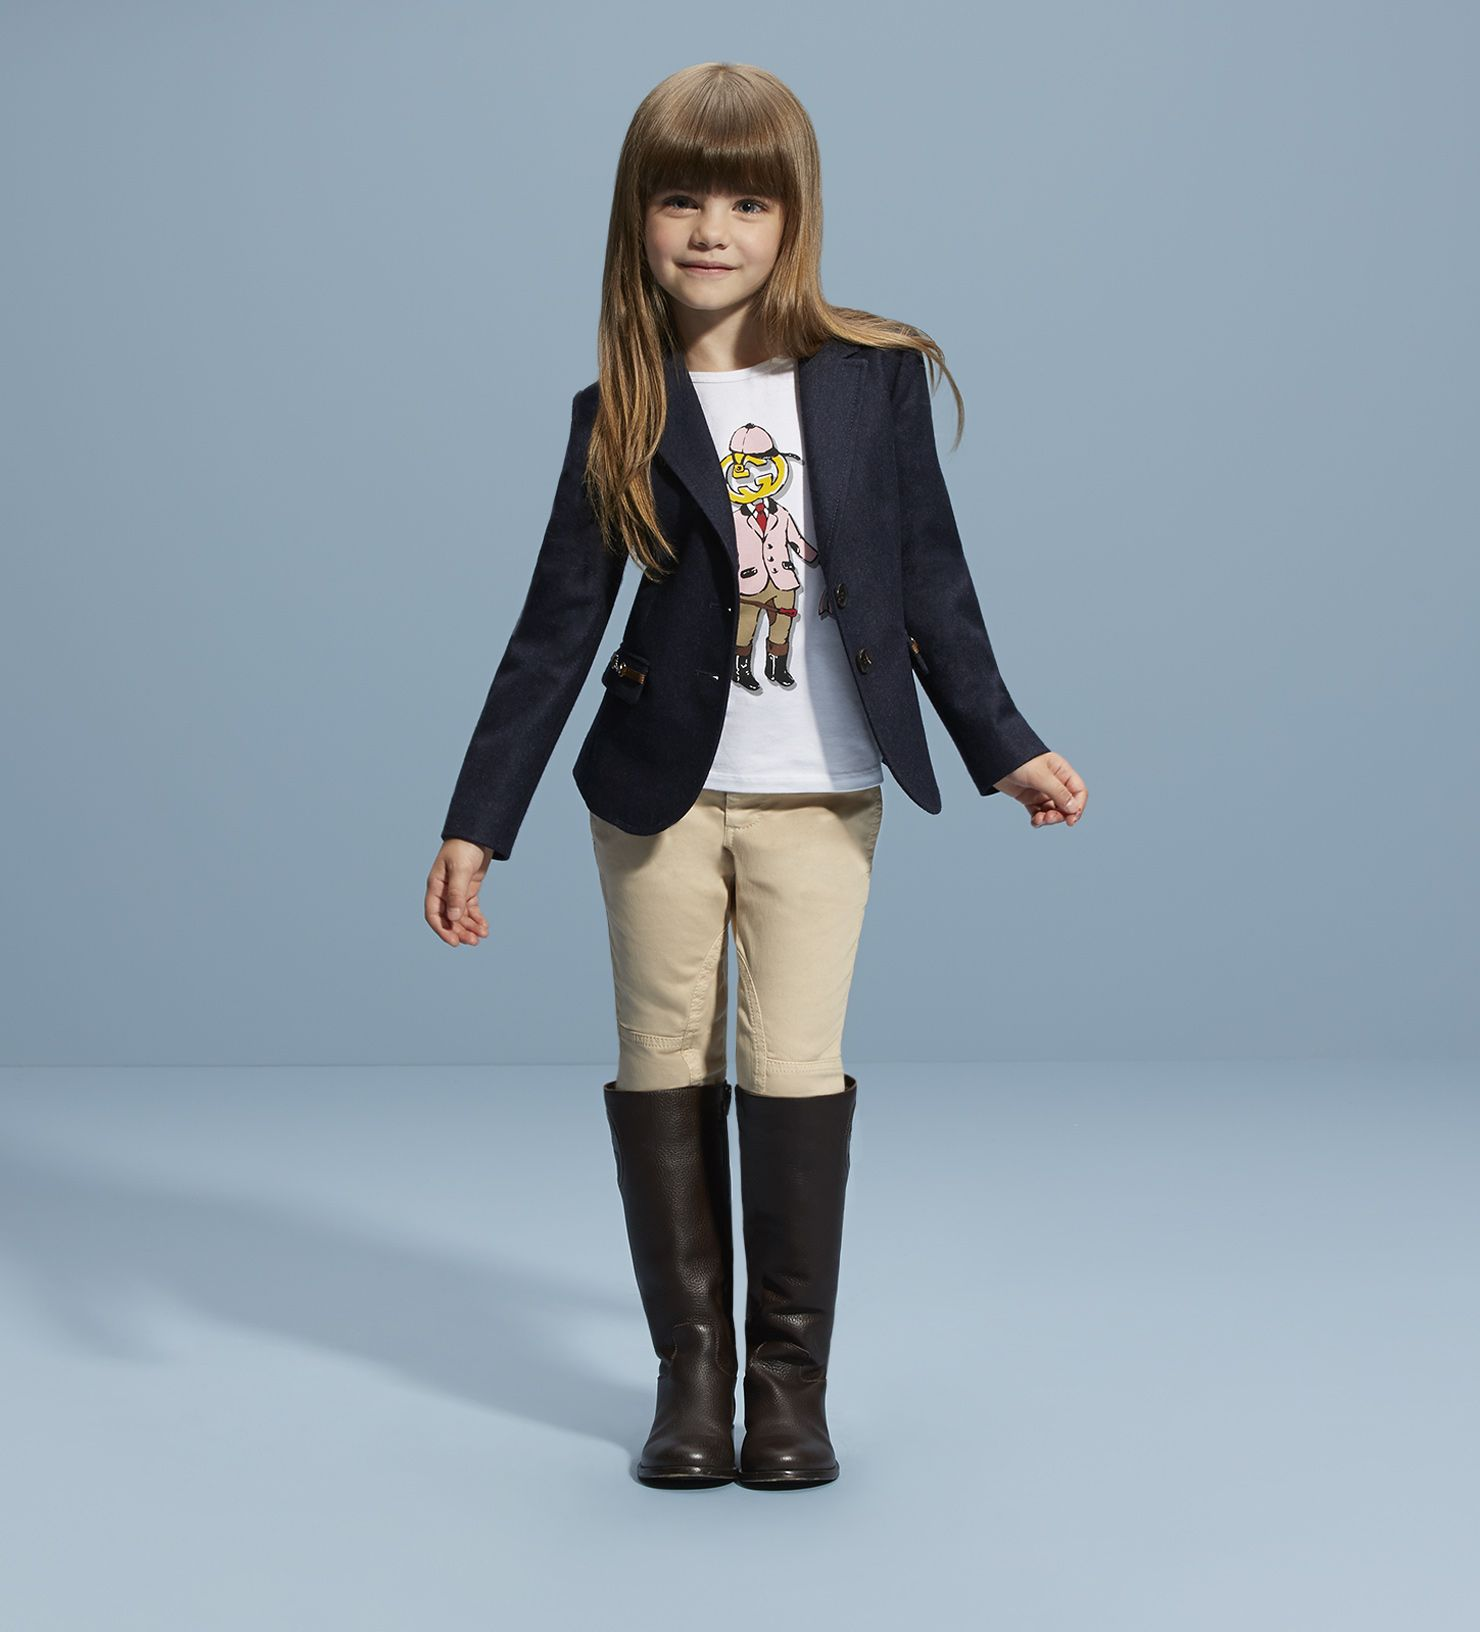 Gucci Kids, Blazer, Riding Boots - Girls | FASHION | Pinterest ...